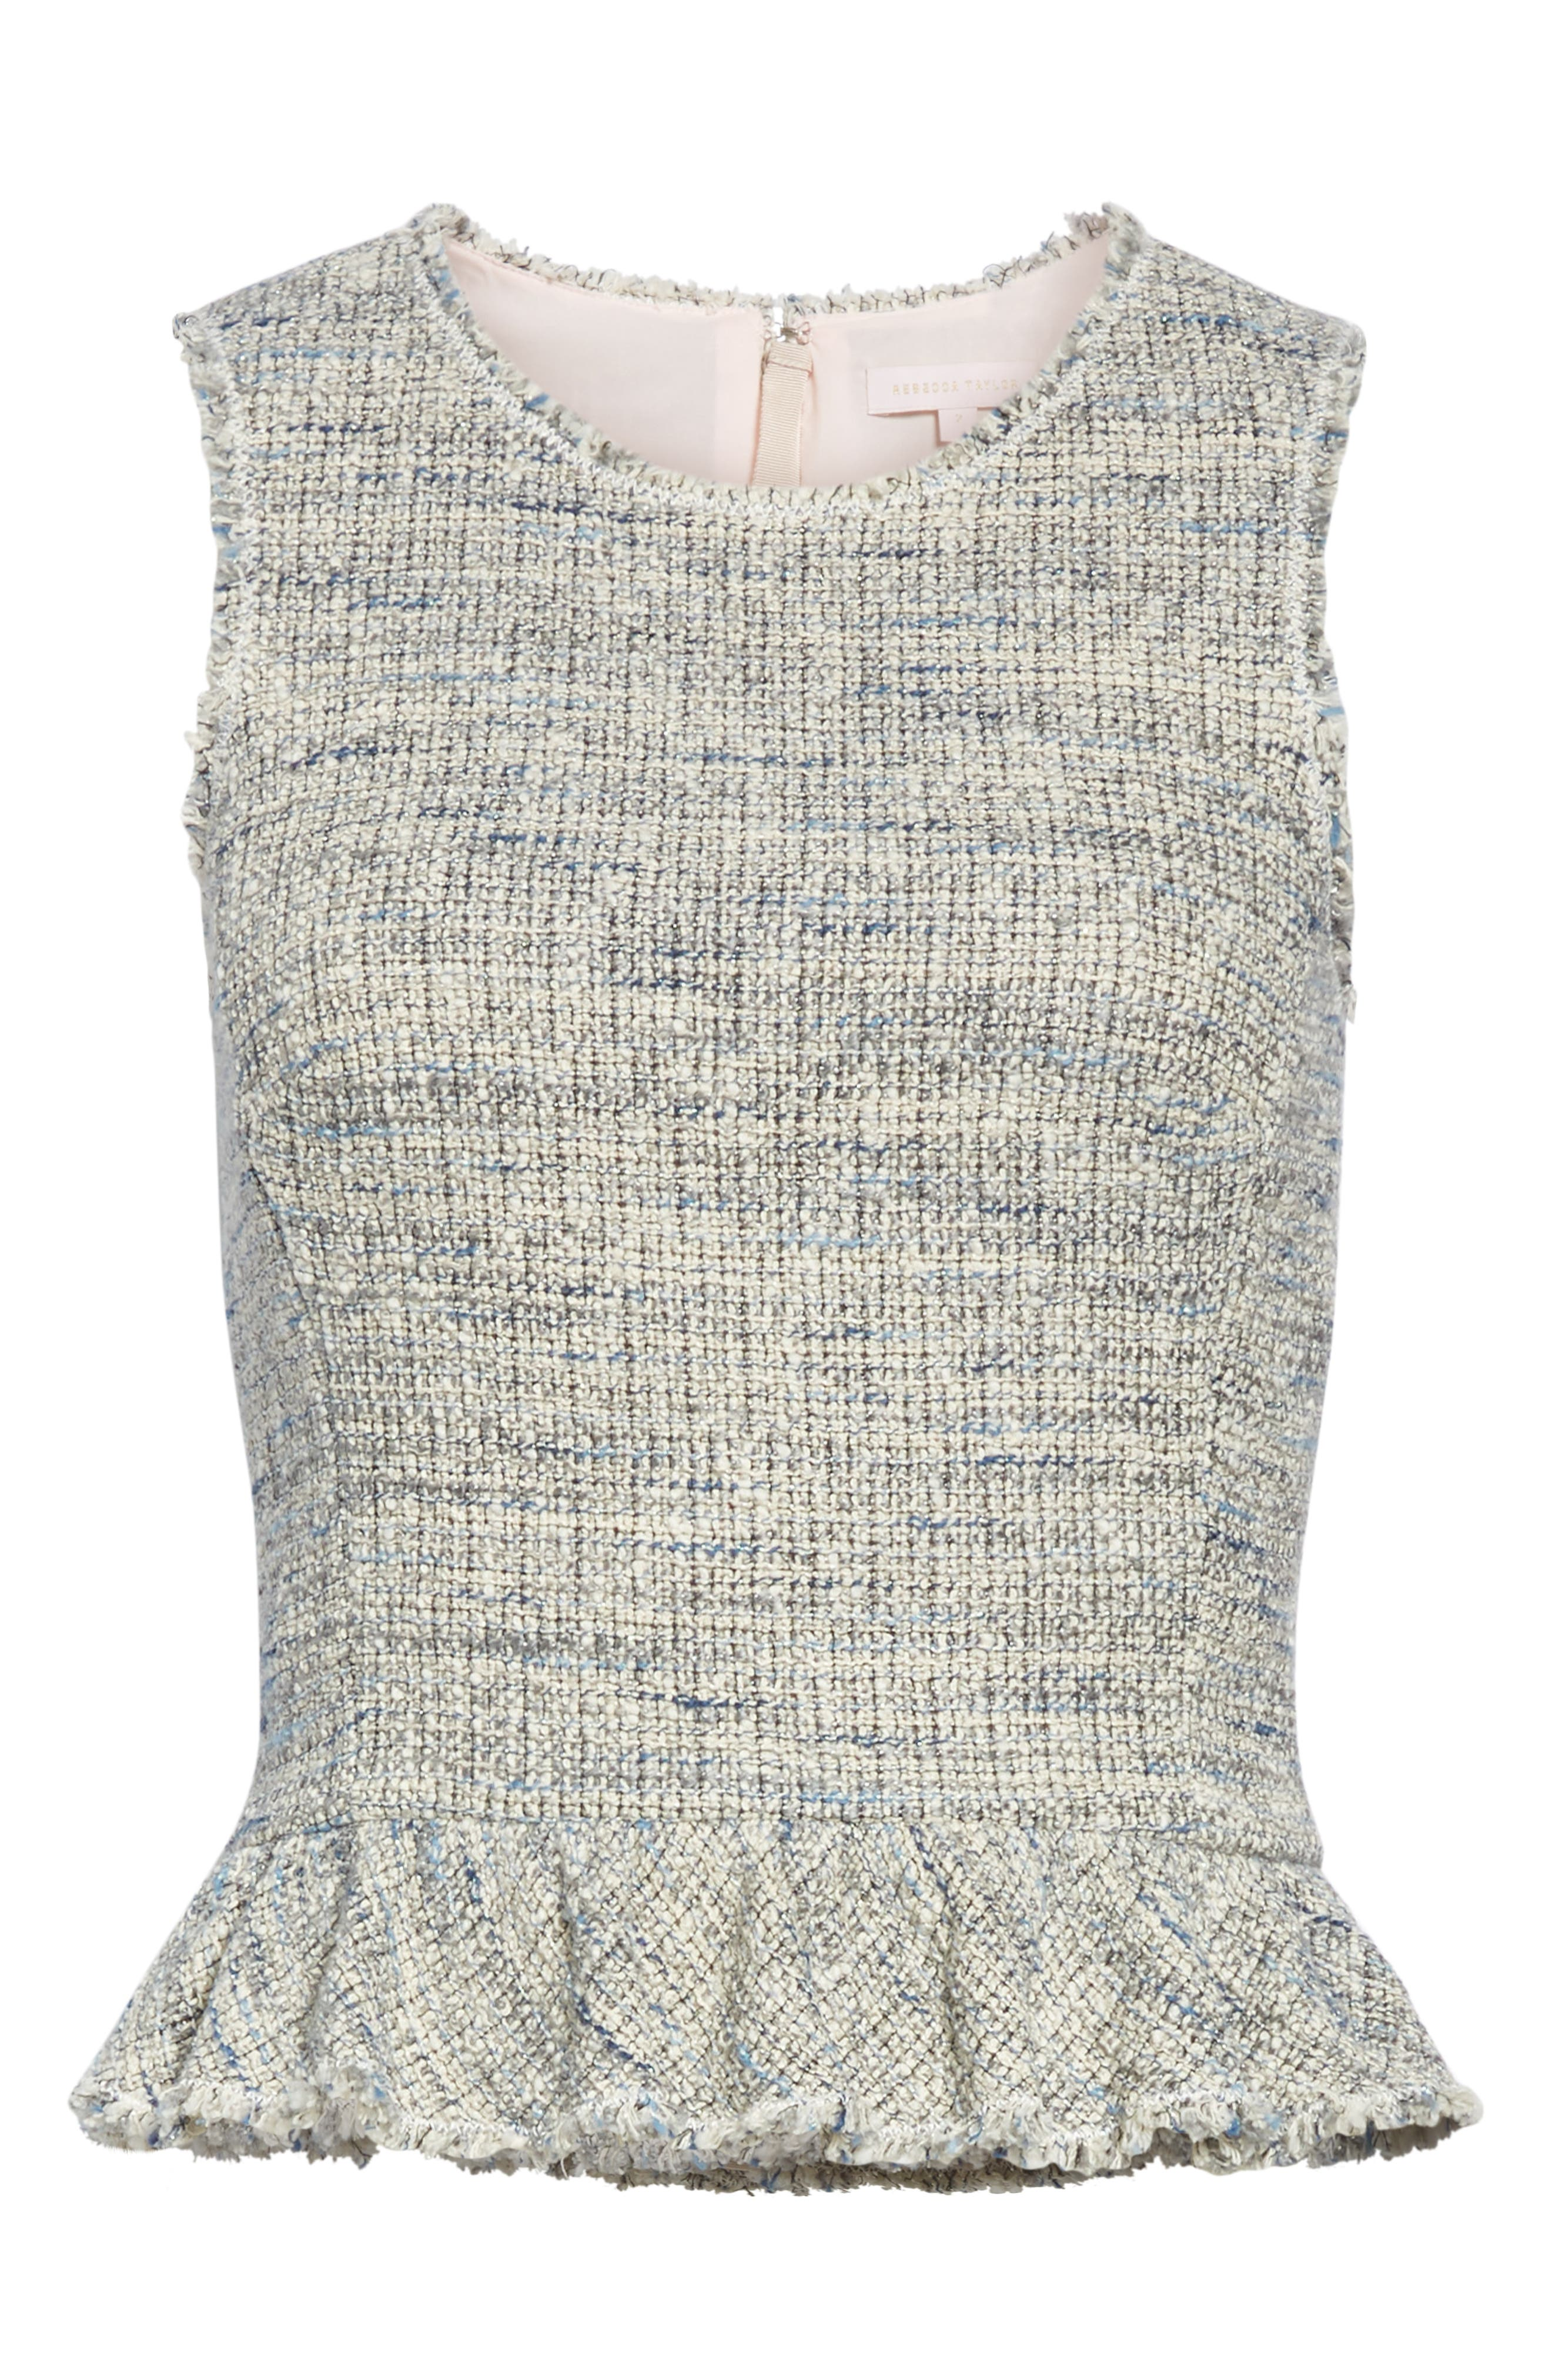 REBECCA TAYLOR, Sleeveless Tweed Peplum Top, Alternate thumbnail 6, color, BLUE/ GREY COMBO